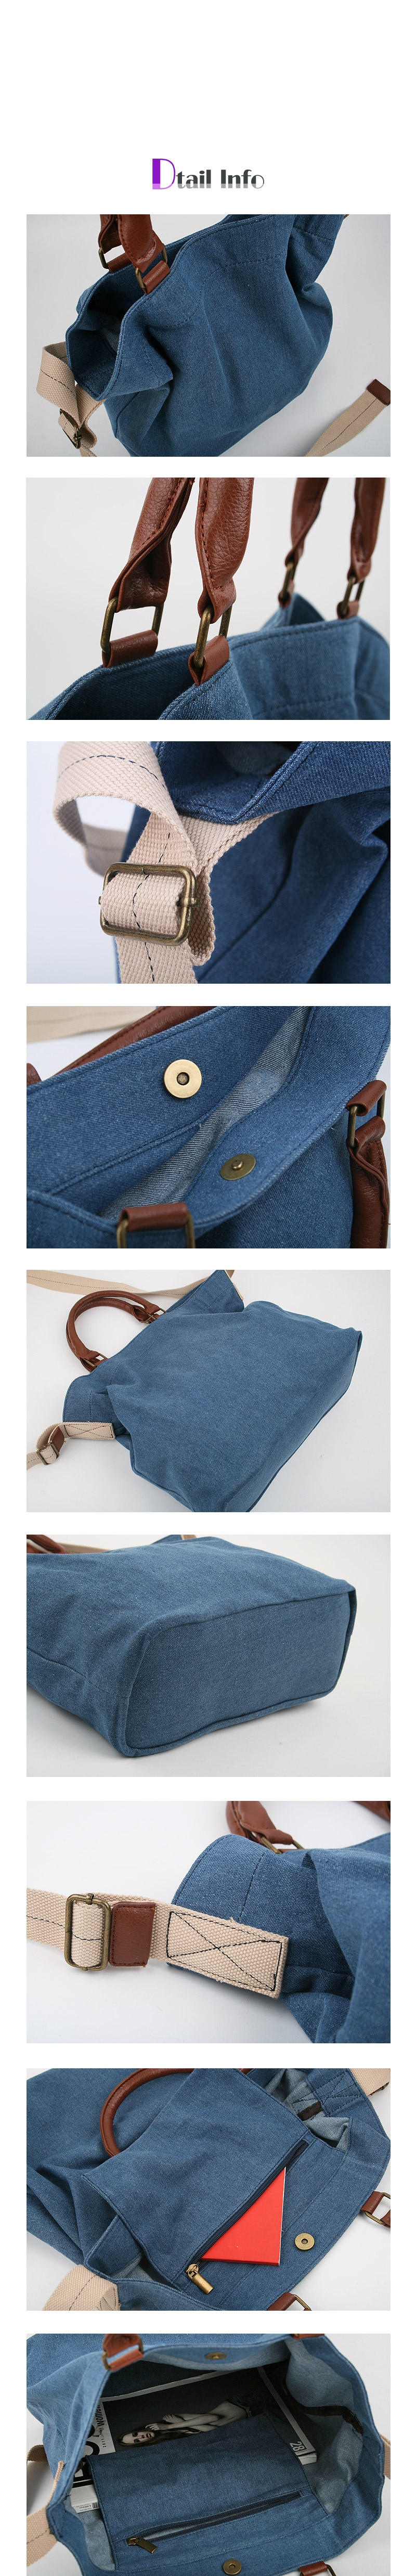 Shoulder&tote bag no.K50211view-1